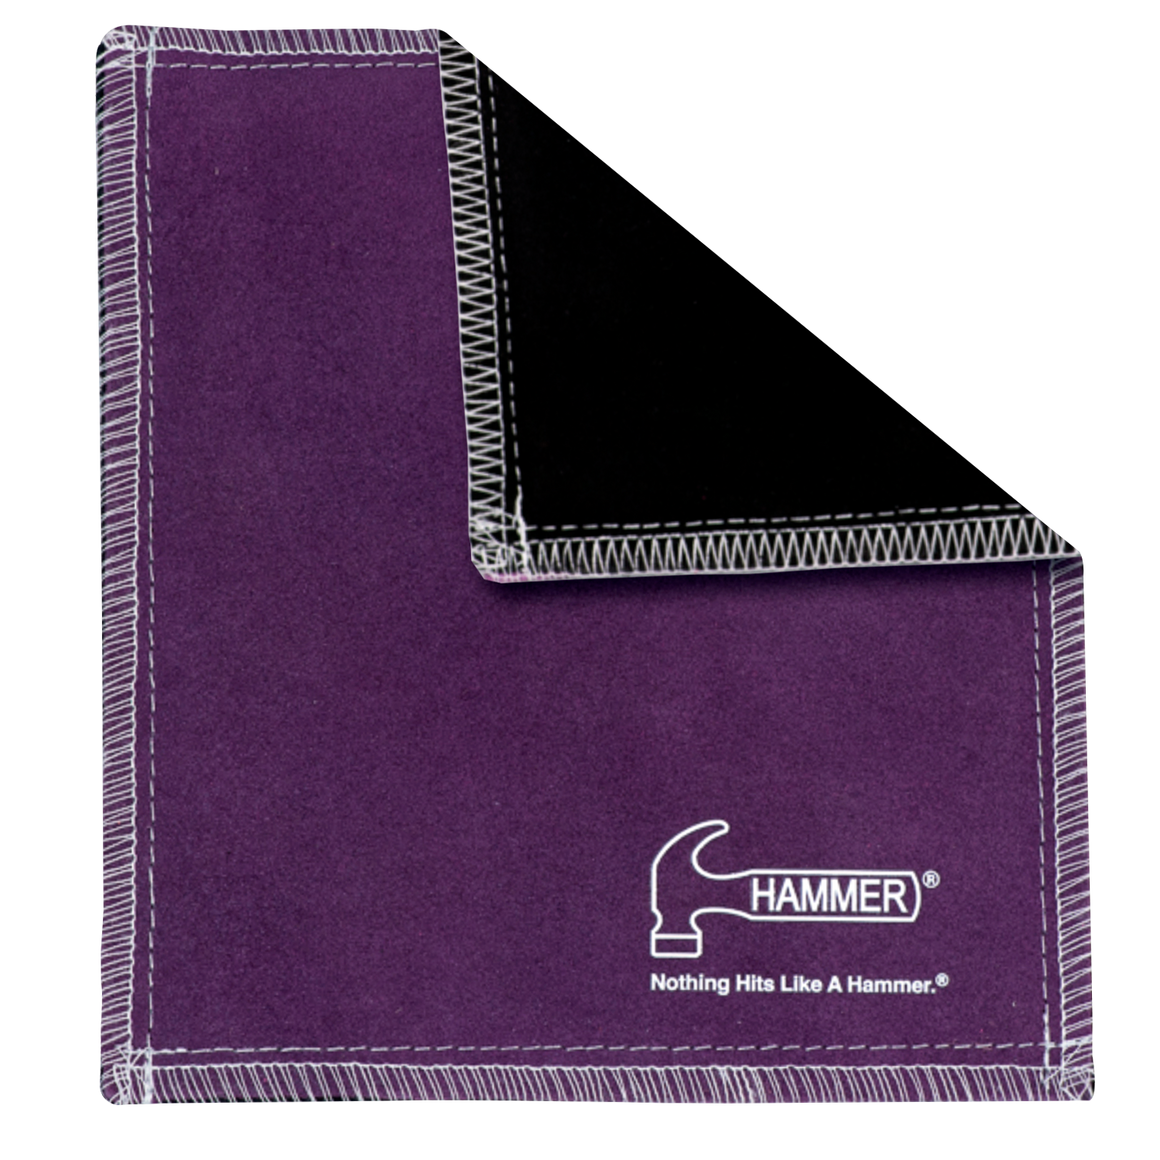 Hammer Shammy Pad/Towel | Purple